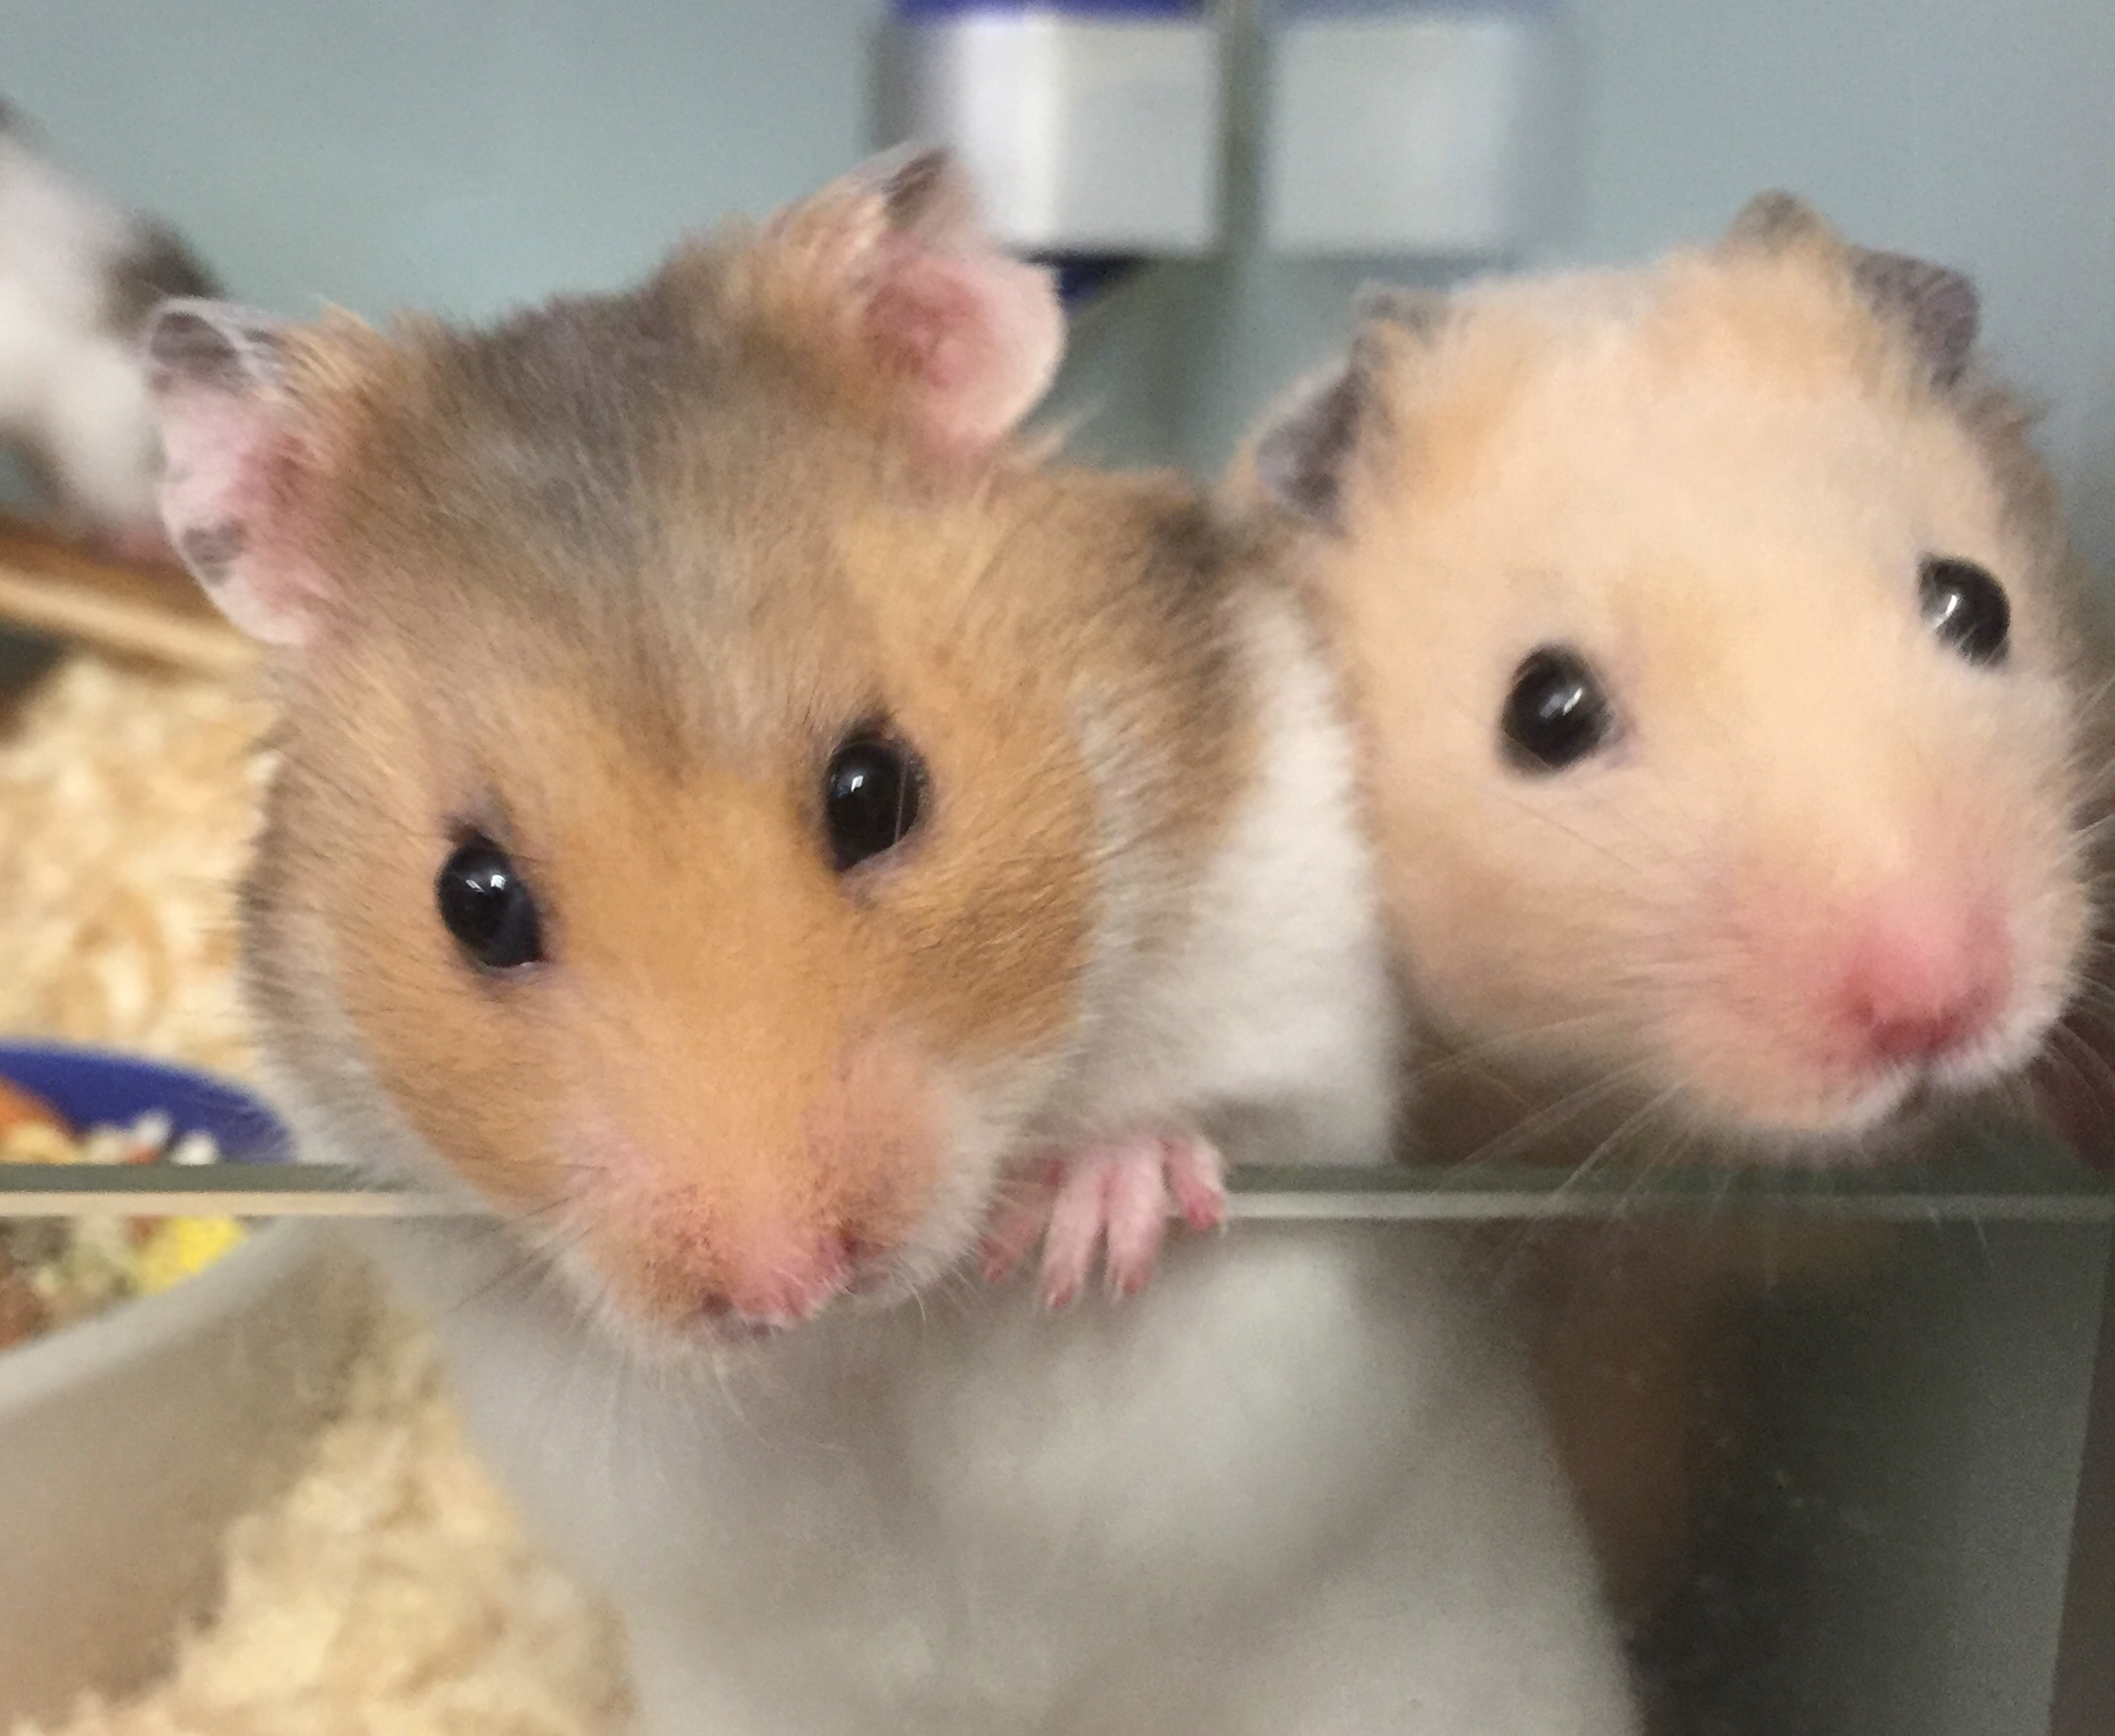 The Pet Shop Ripon, Hamsters for sale, hamsters